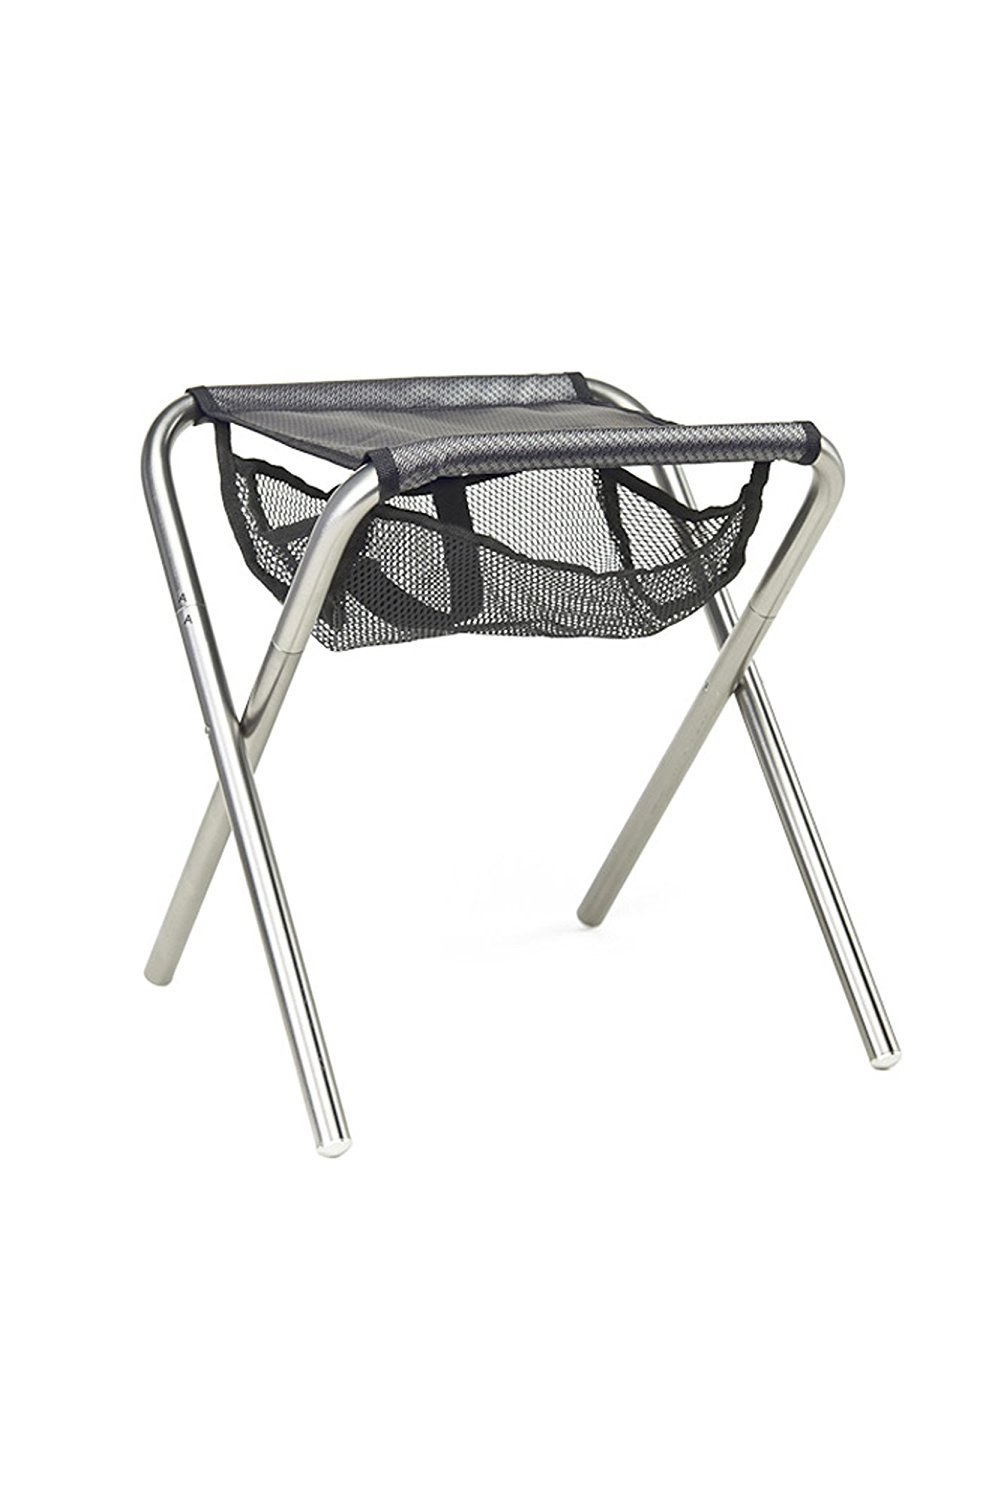 Grand Trunk Collapsible Camp Stool One Size [並行輸入品] B077QQV2VD